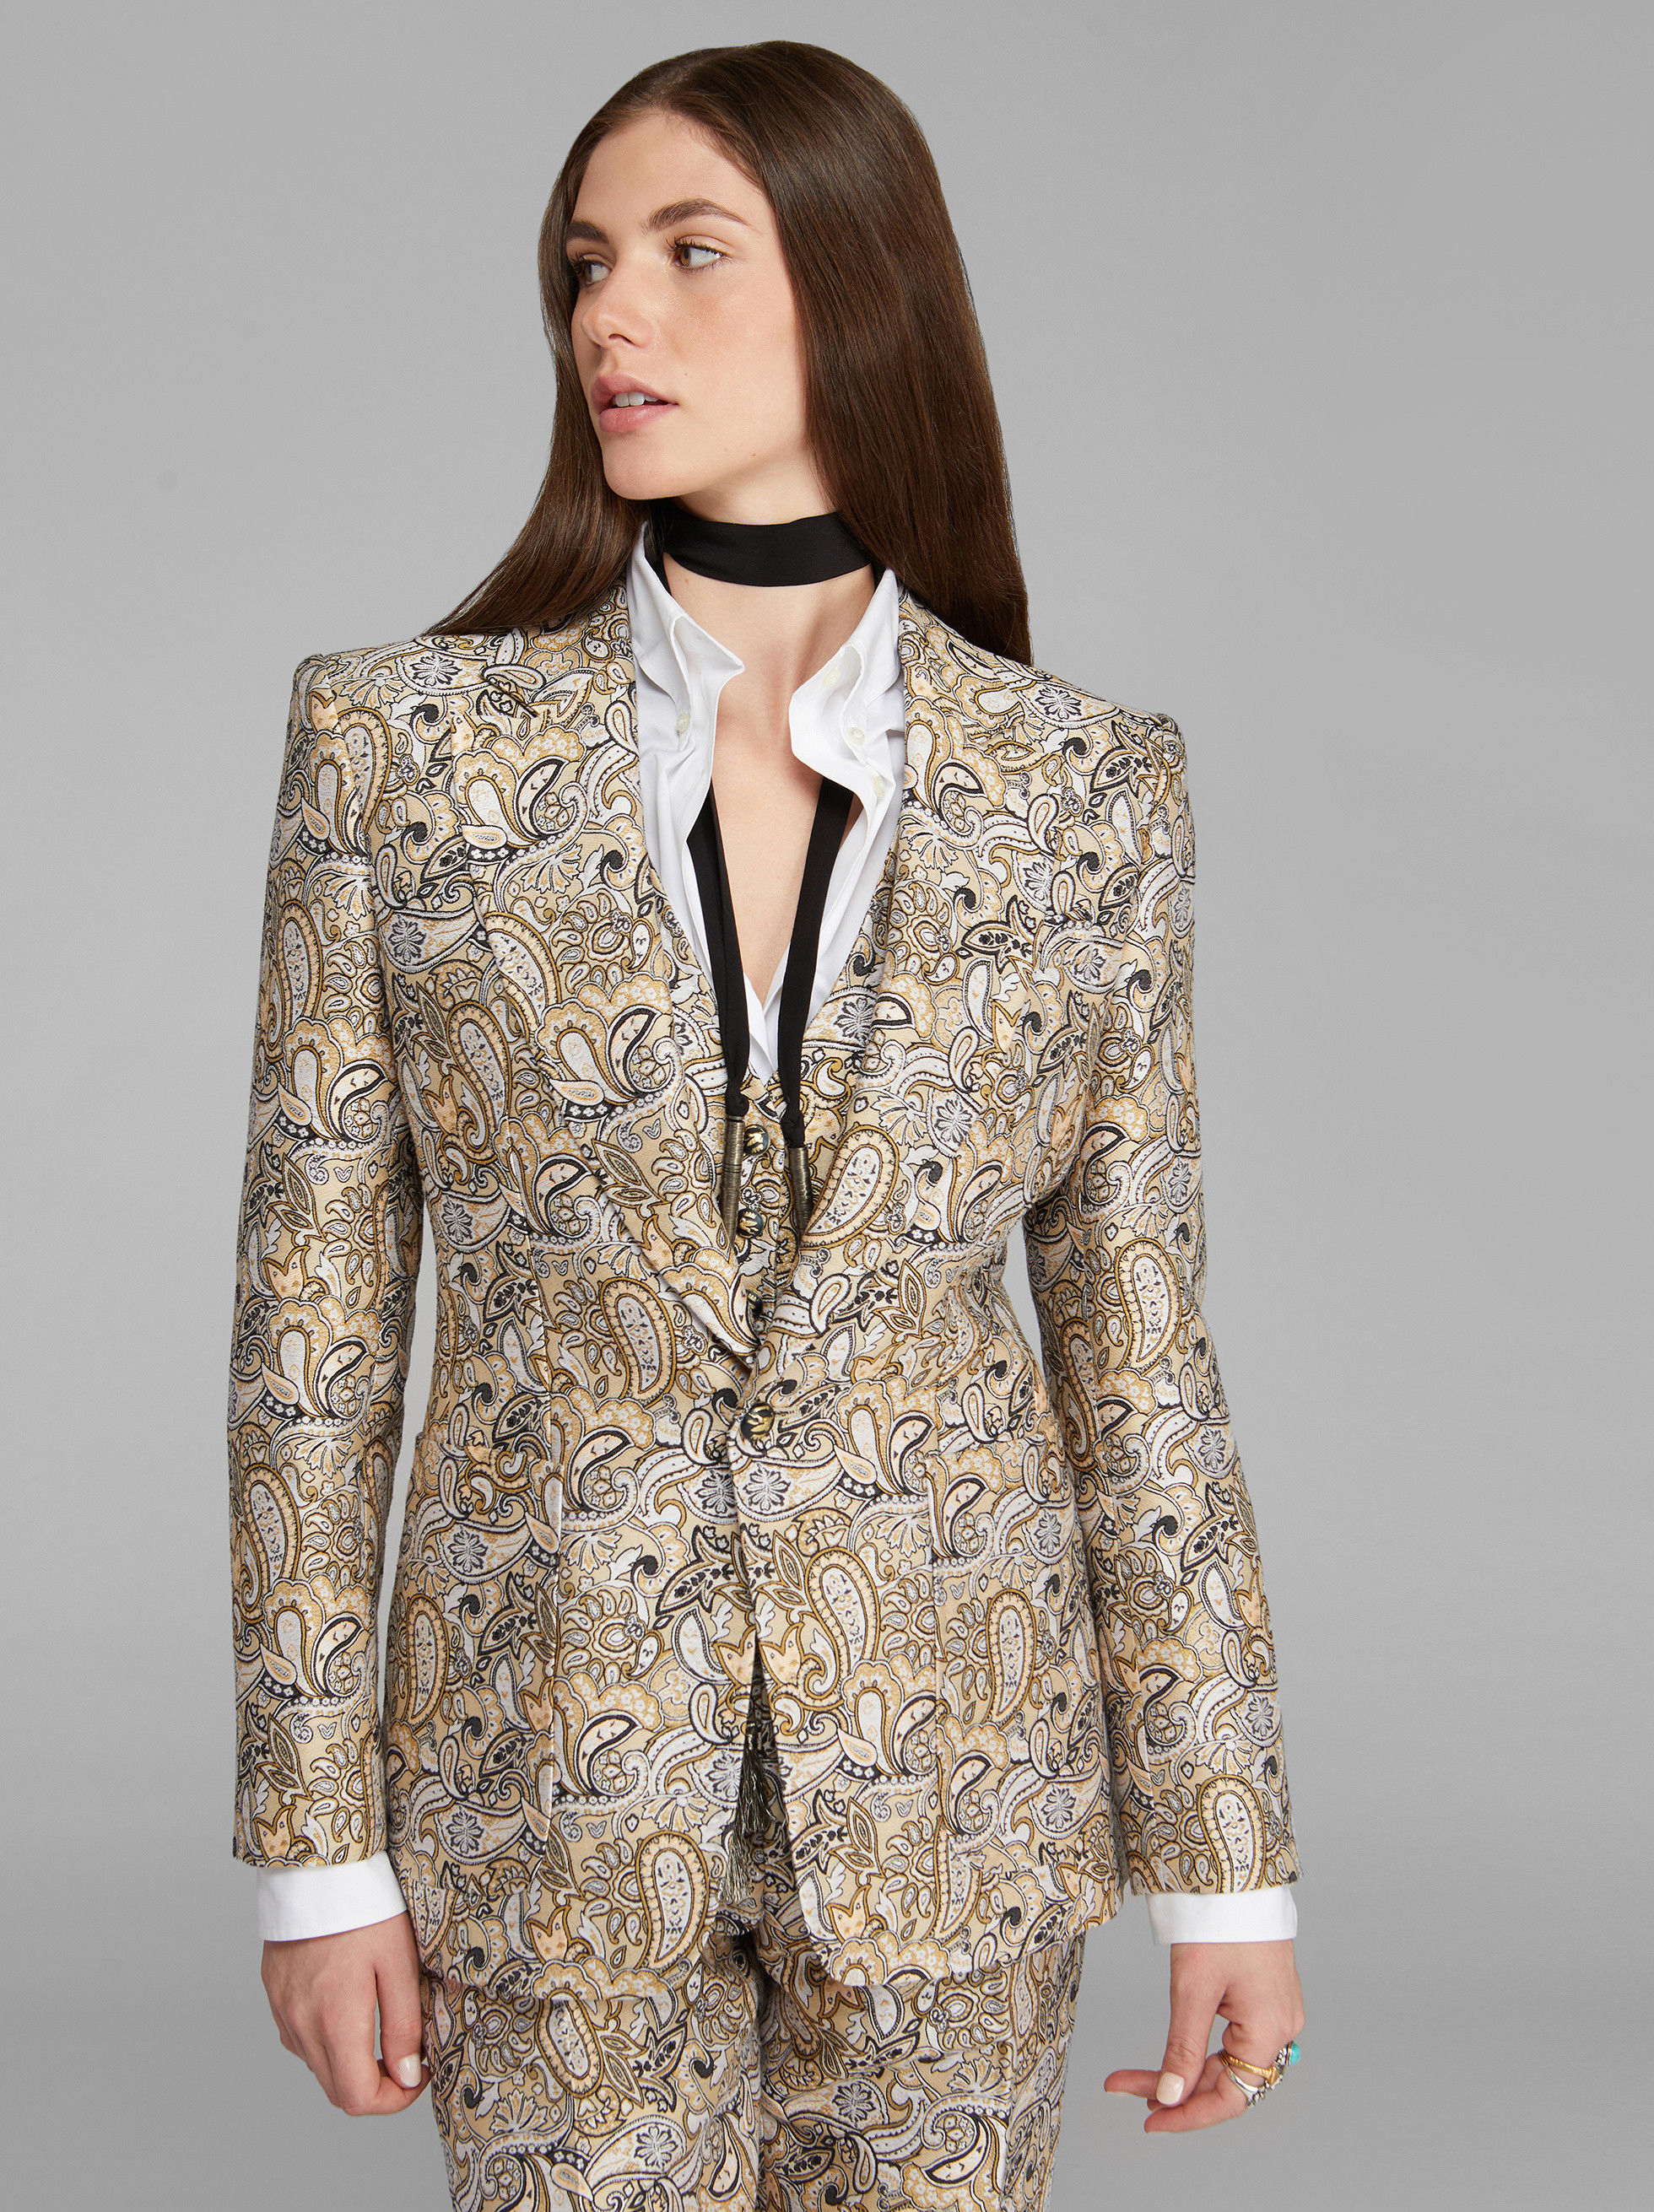 JACQUARD TAILORED JACKET WITH PAISLEY PATTERNS